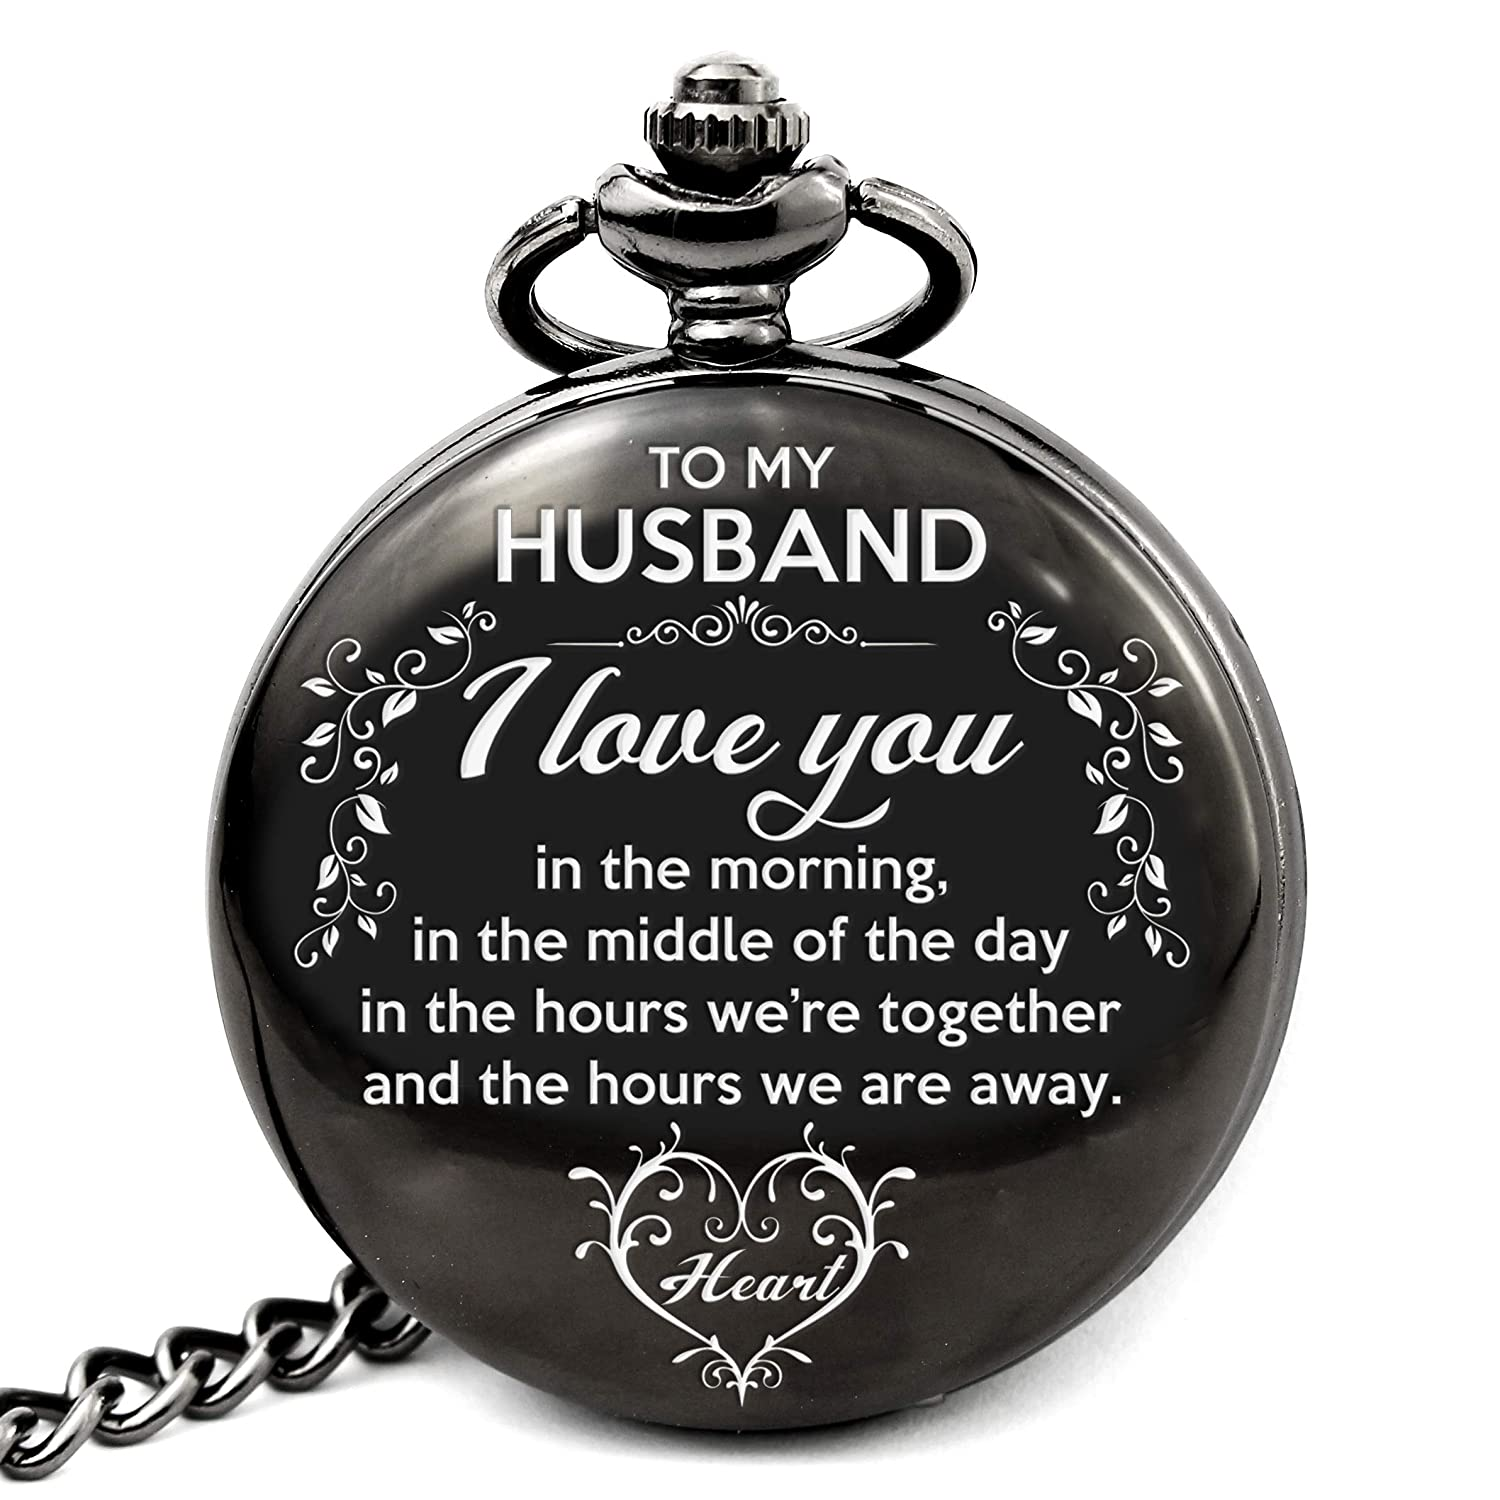 Memory gift Engraved pocket watch to husband, vintage style, best gift to husband for Valentine day, birthday, Christmas, Wedding Anniversary day.